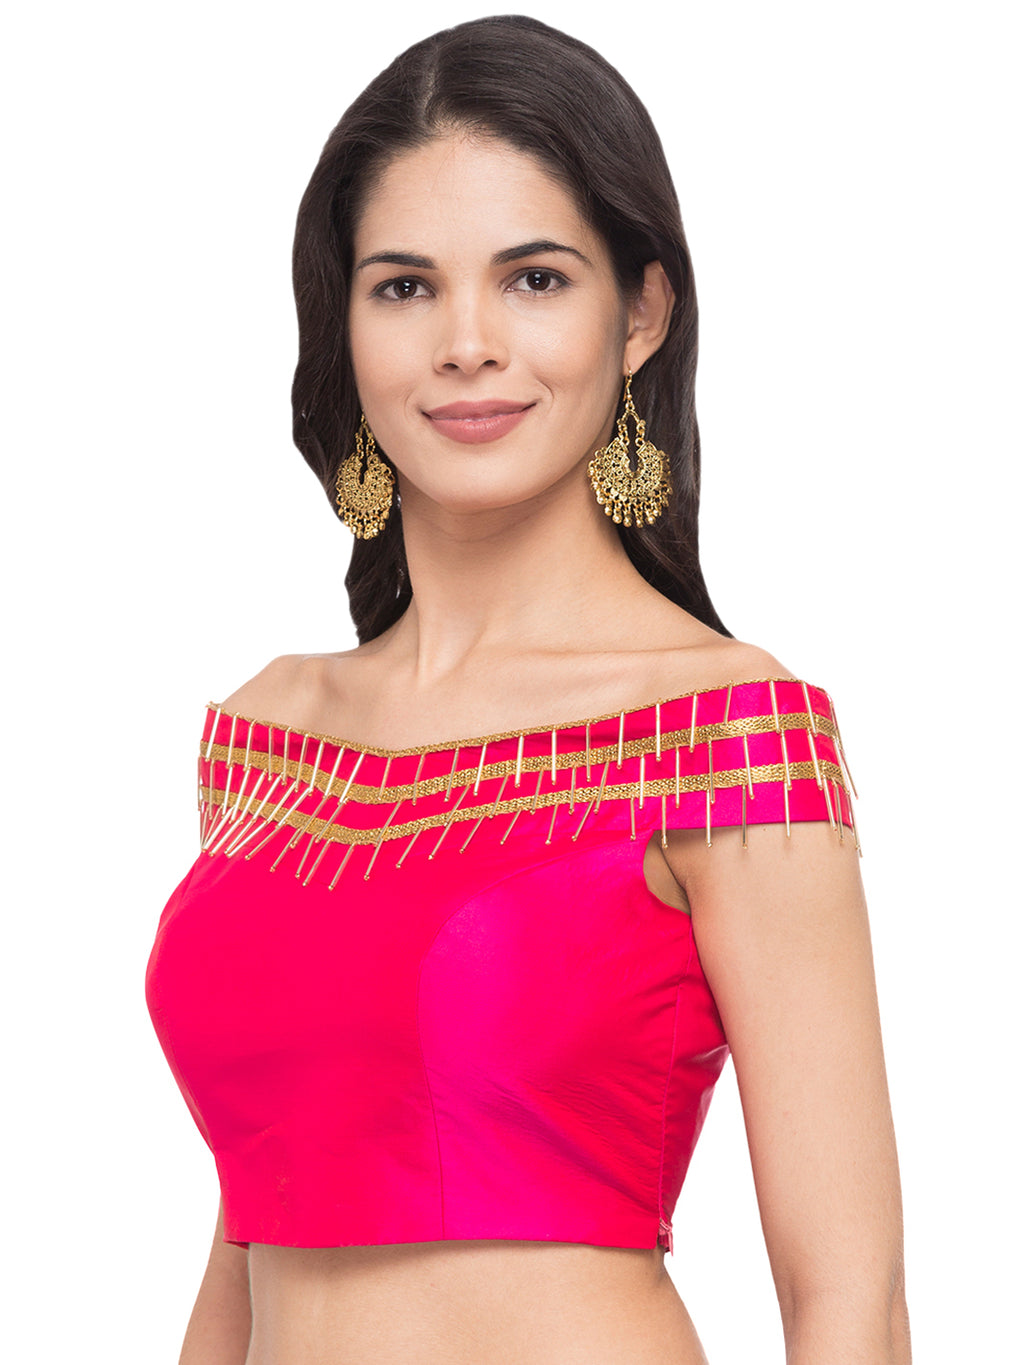 'JUST B' PINK EBMELLISHED SAREE BLOUSE Pink